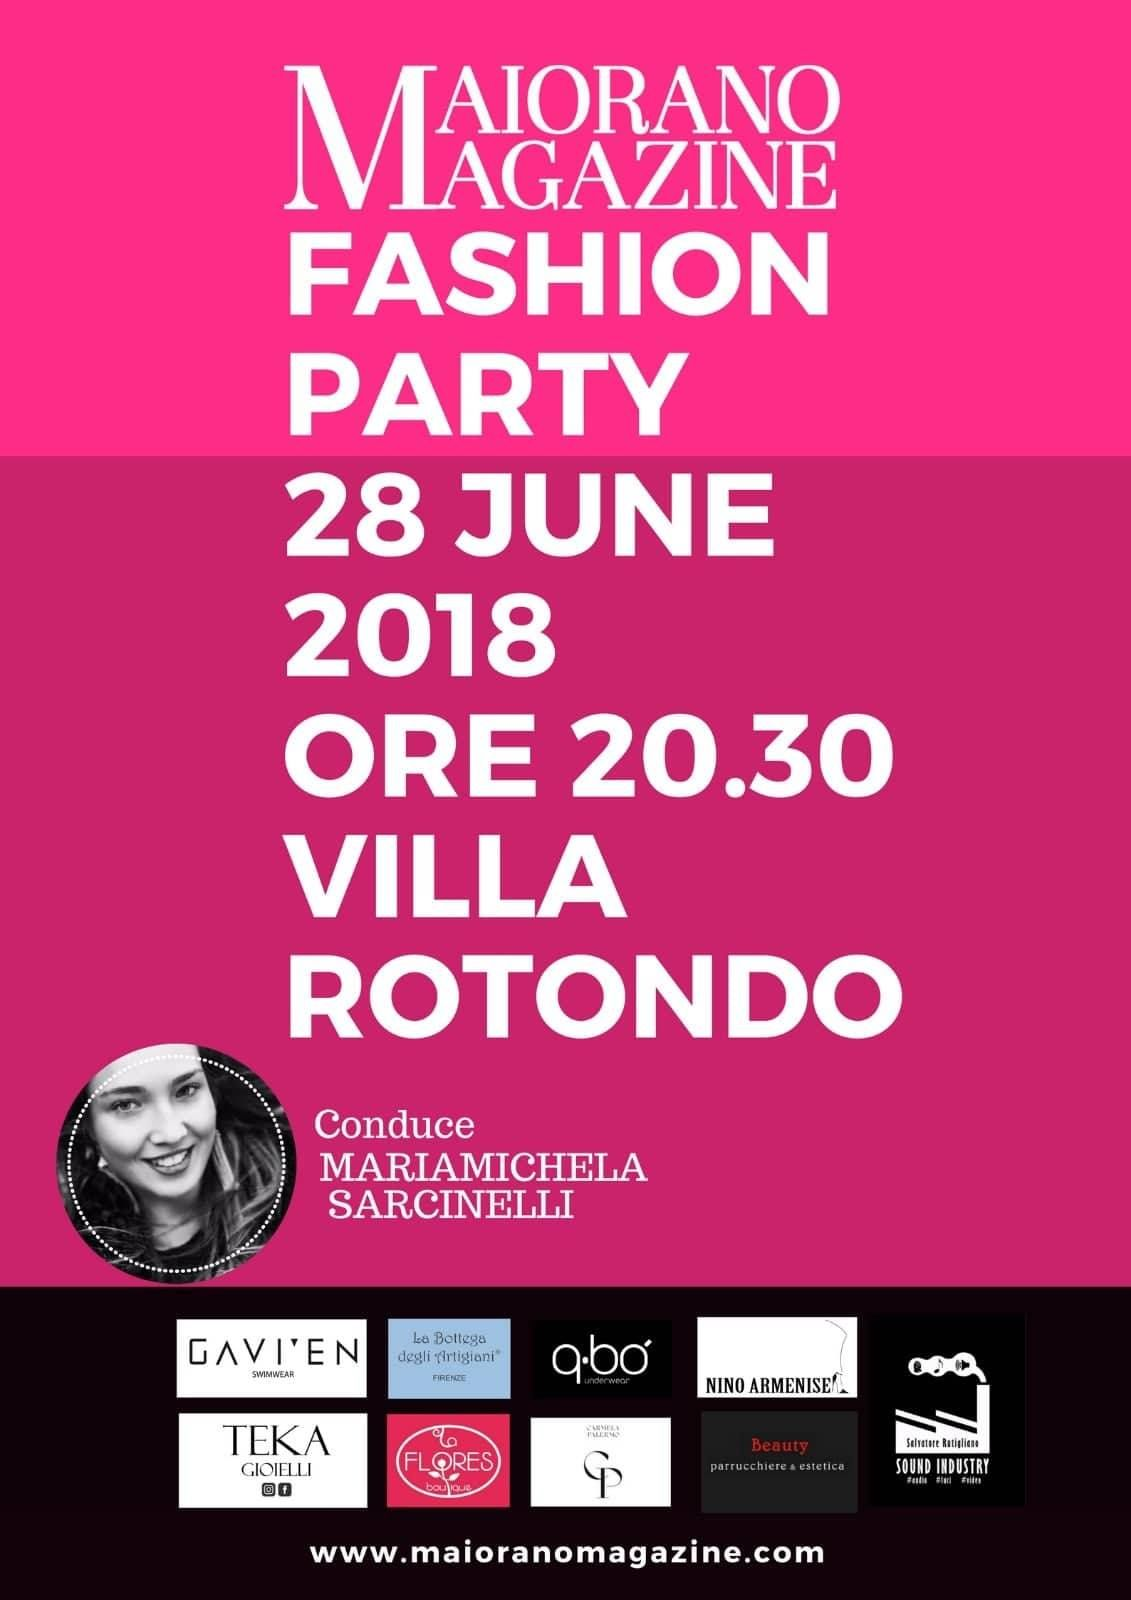 Bari, Fashion Show e glam party per il Maiorano Magazine